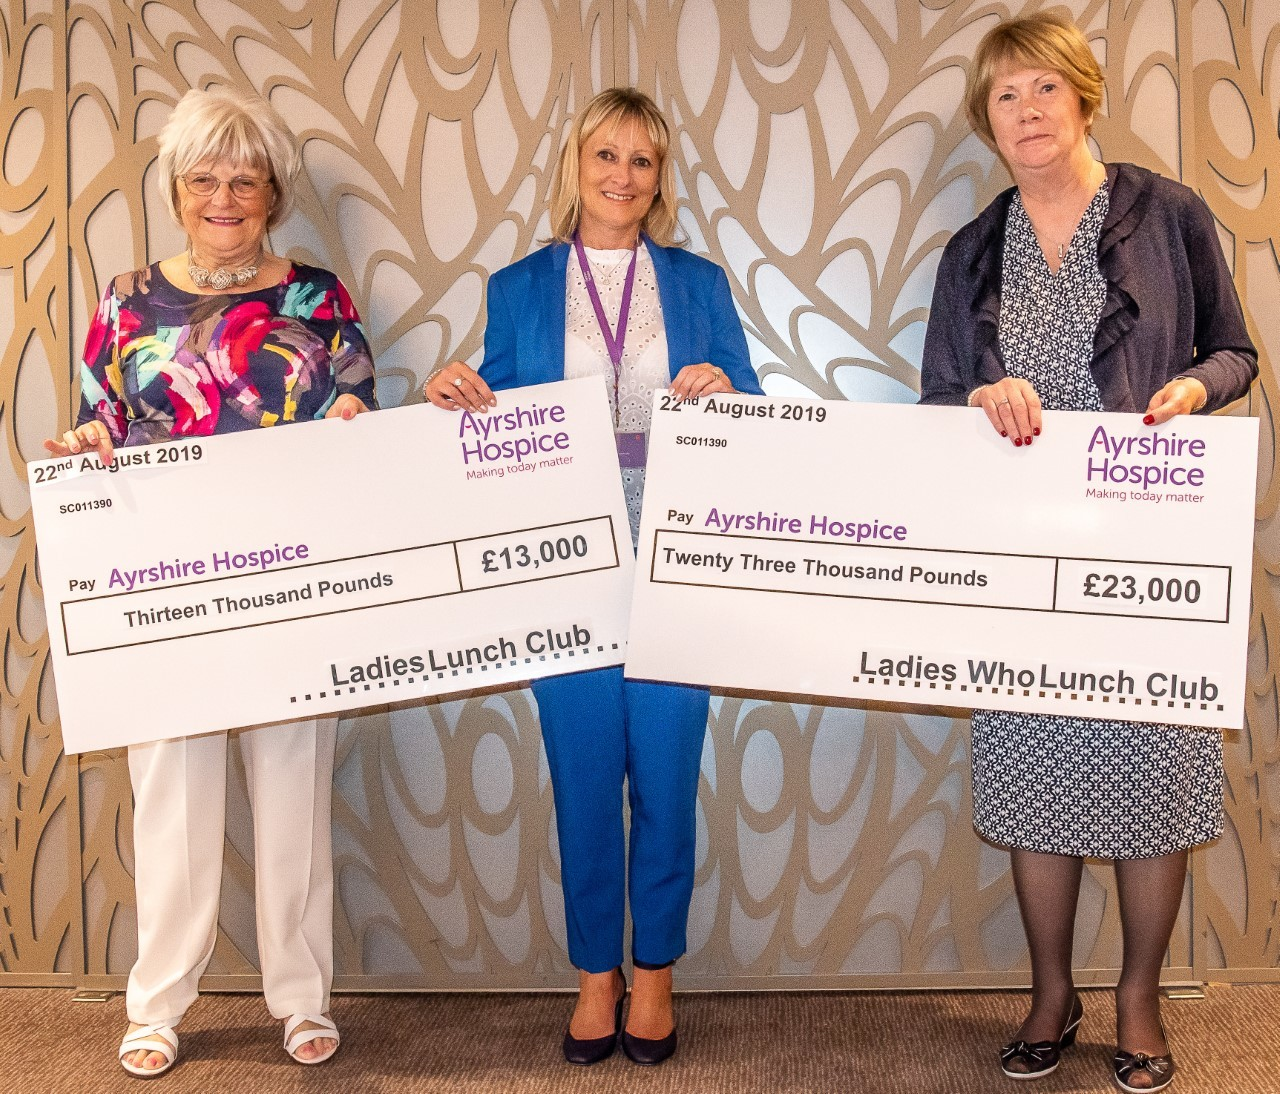 Lady lunch clubs boost for Ayrshire Hospice